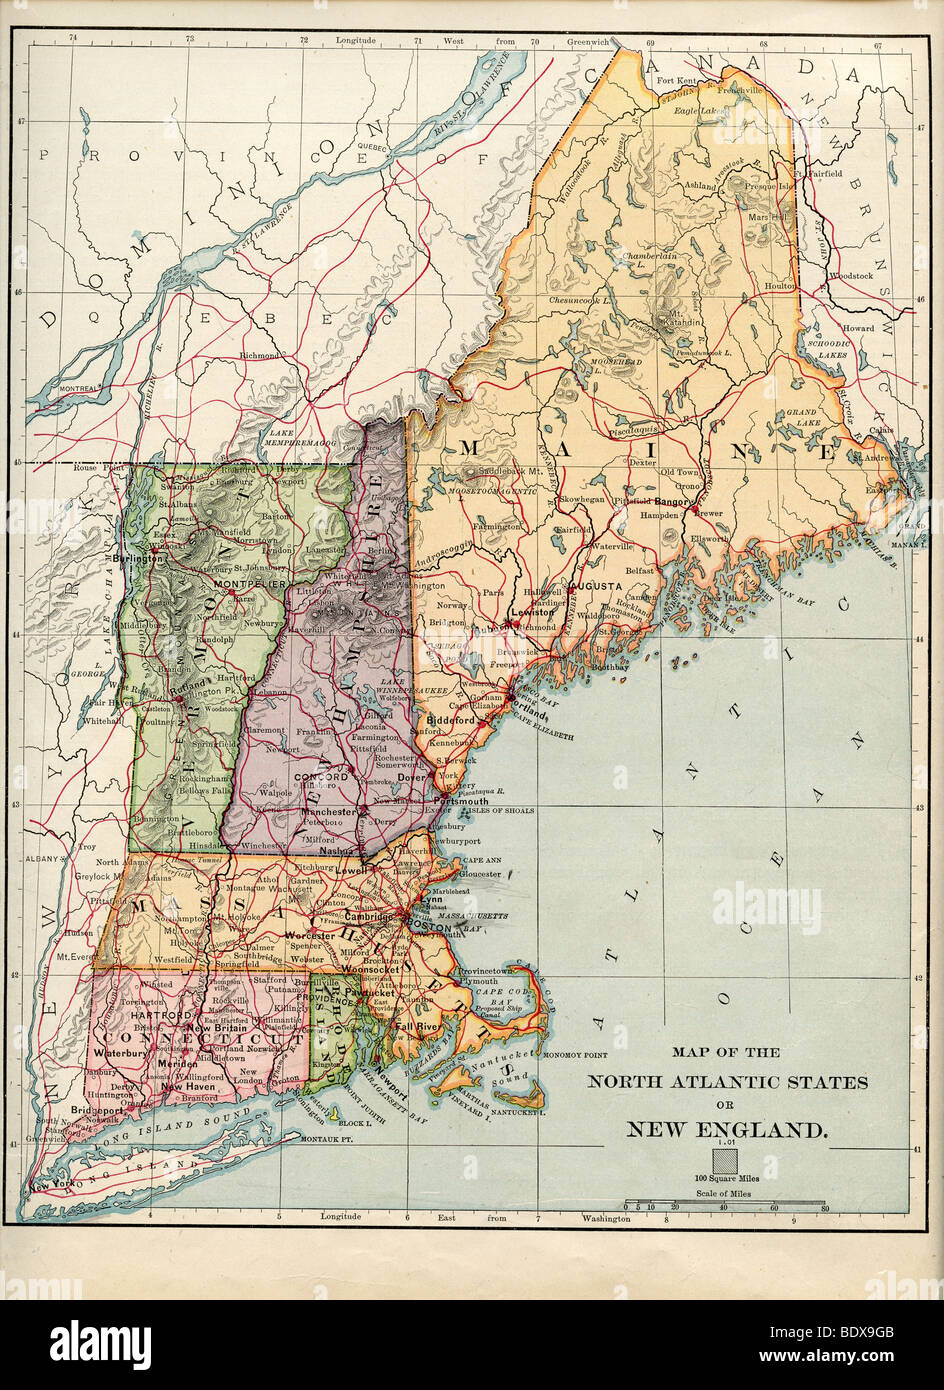 Old New England Map.Original Old Map Of New England From 1875 Geography Textbook Stock